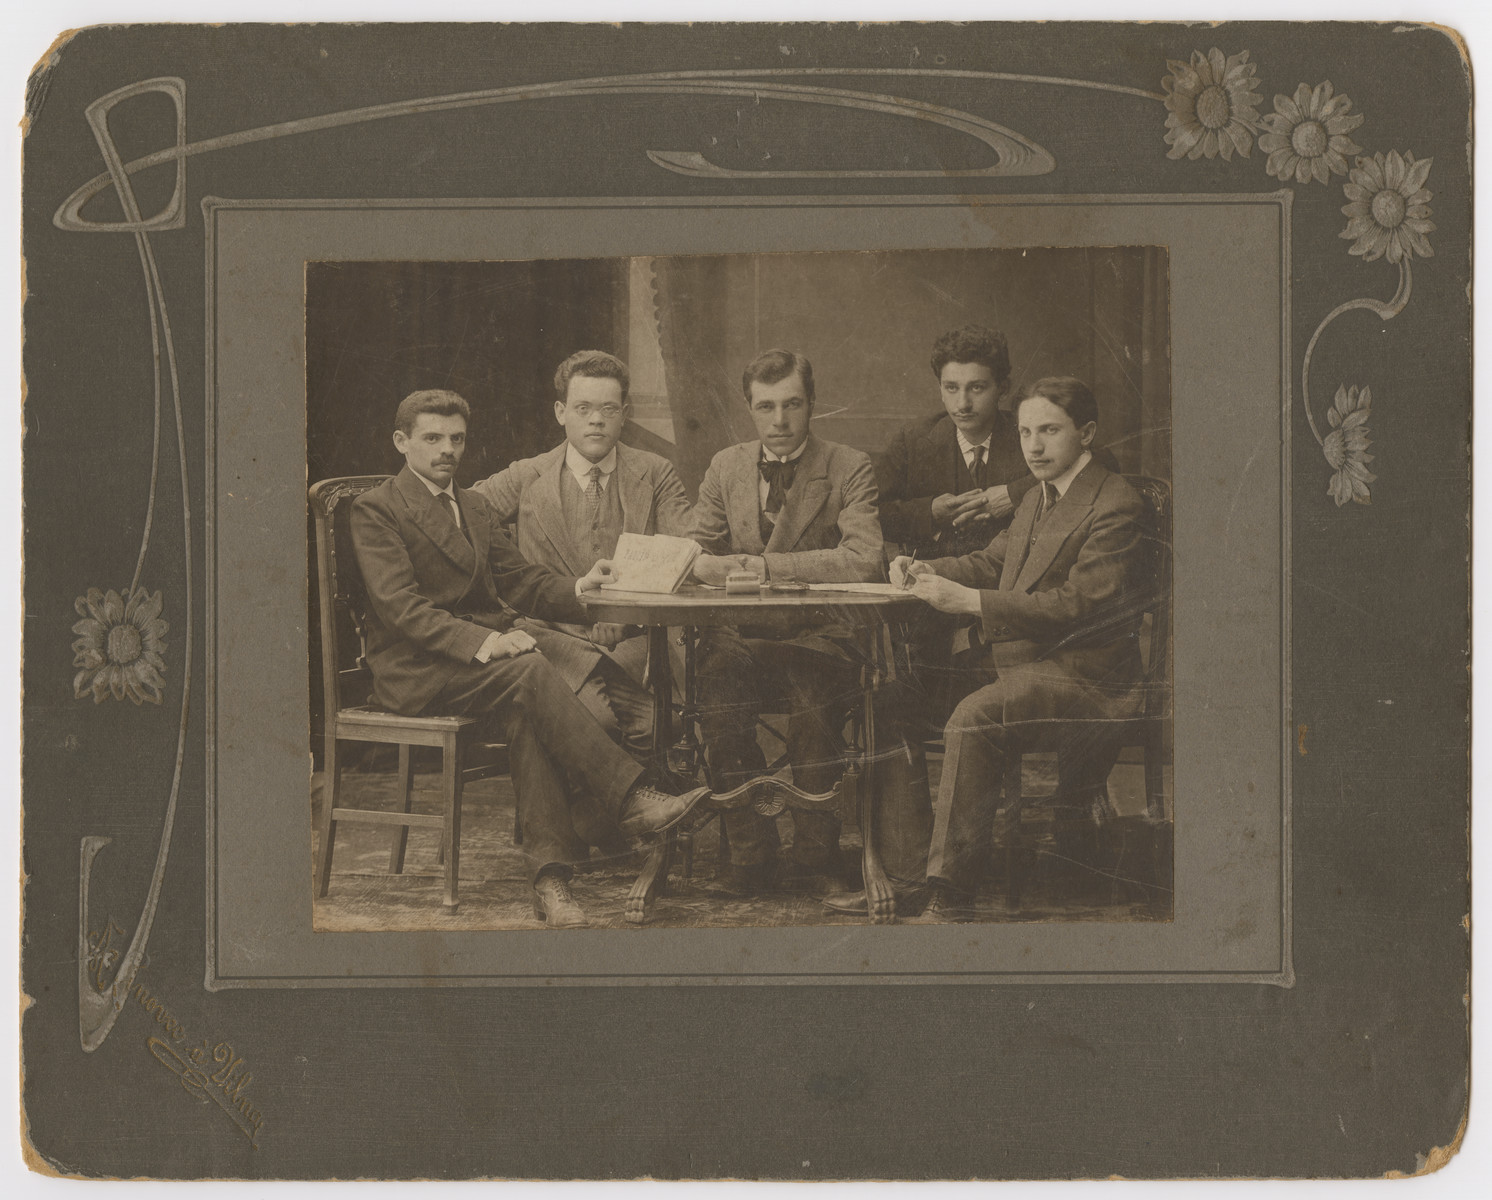 Studio portrait of the staff of a Zionist newspaper in Vilna.  Abraham Reiches is pictured second from the left.